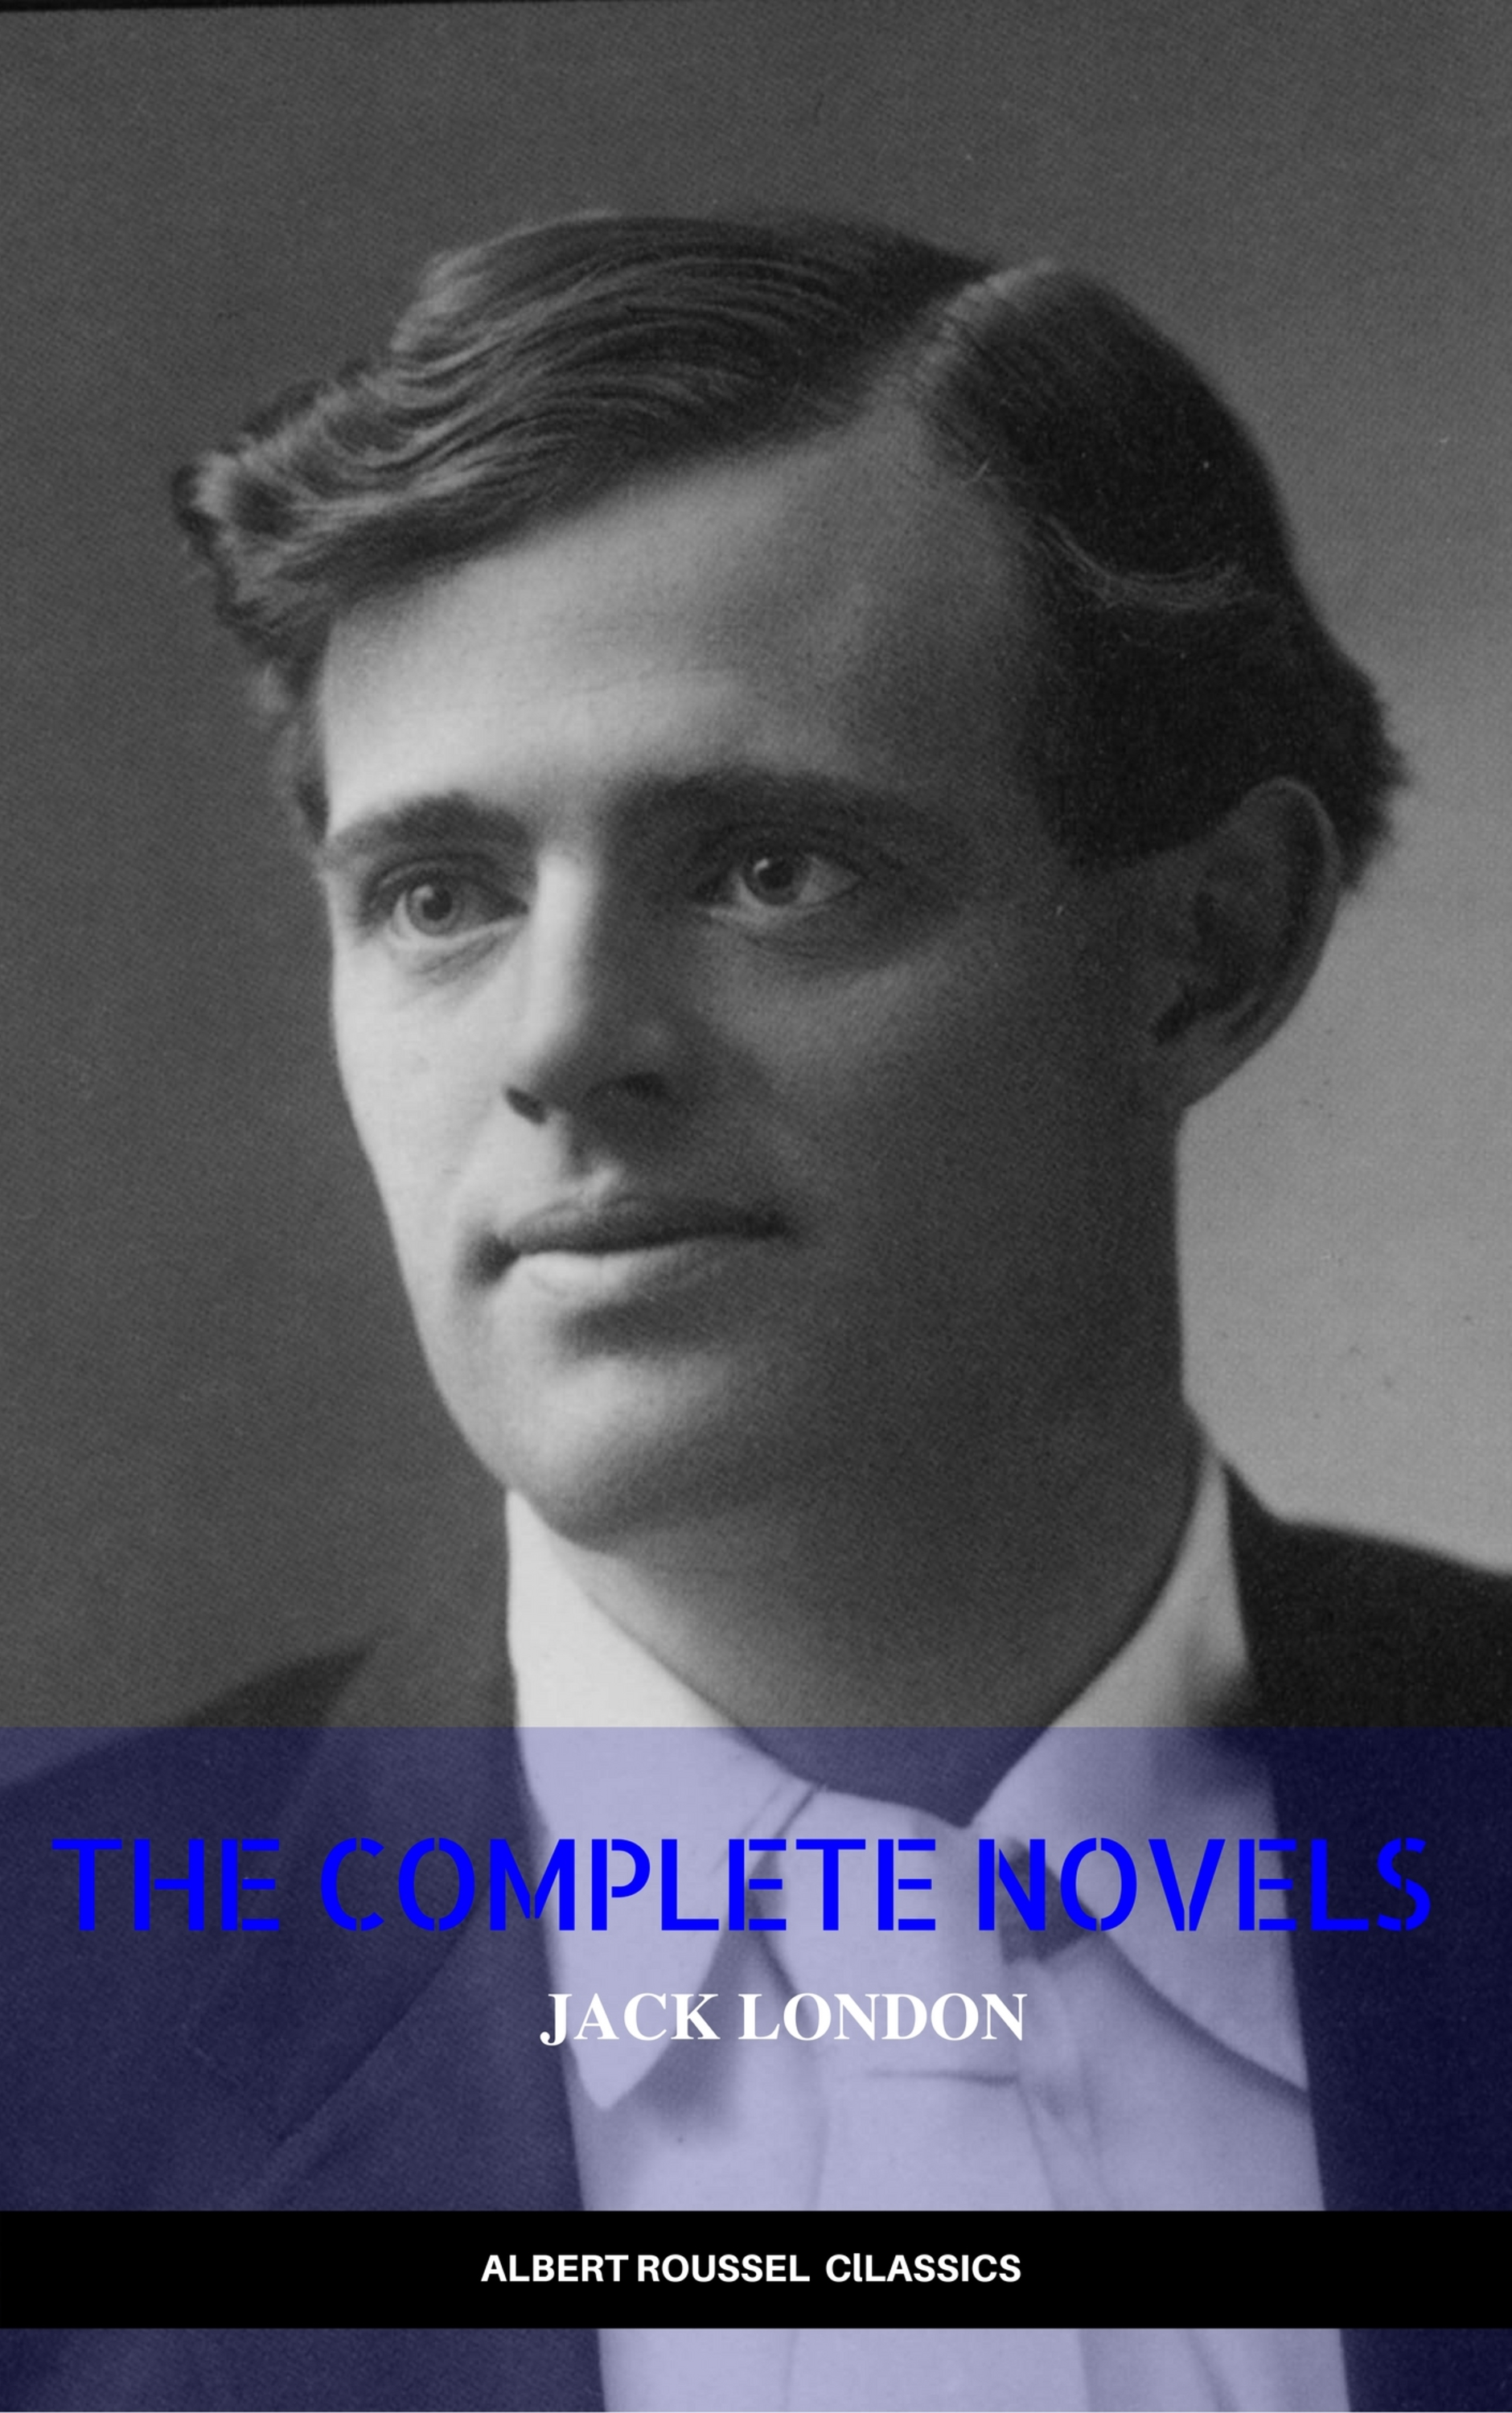 Фото - Джек Лондон Jack London: The Complete Novels (Manor Books) (The Greatest Writers of All Time) london jack children of the frost